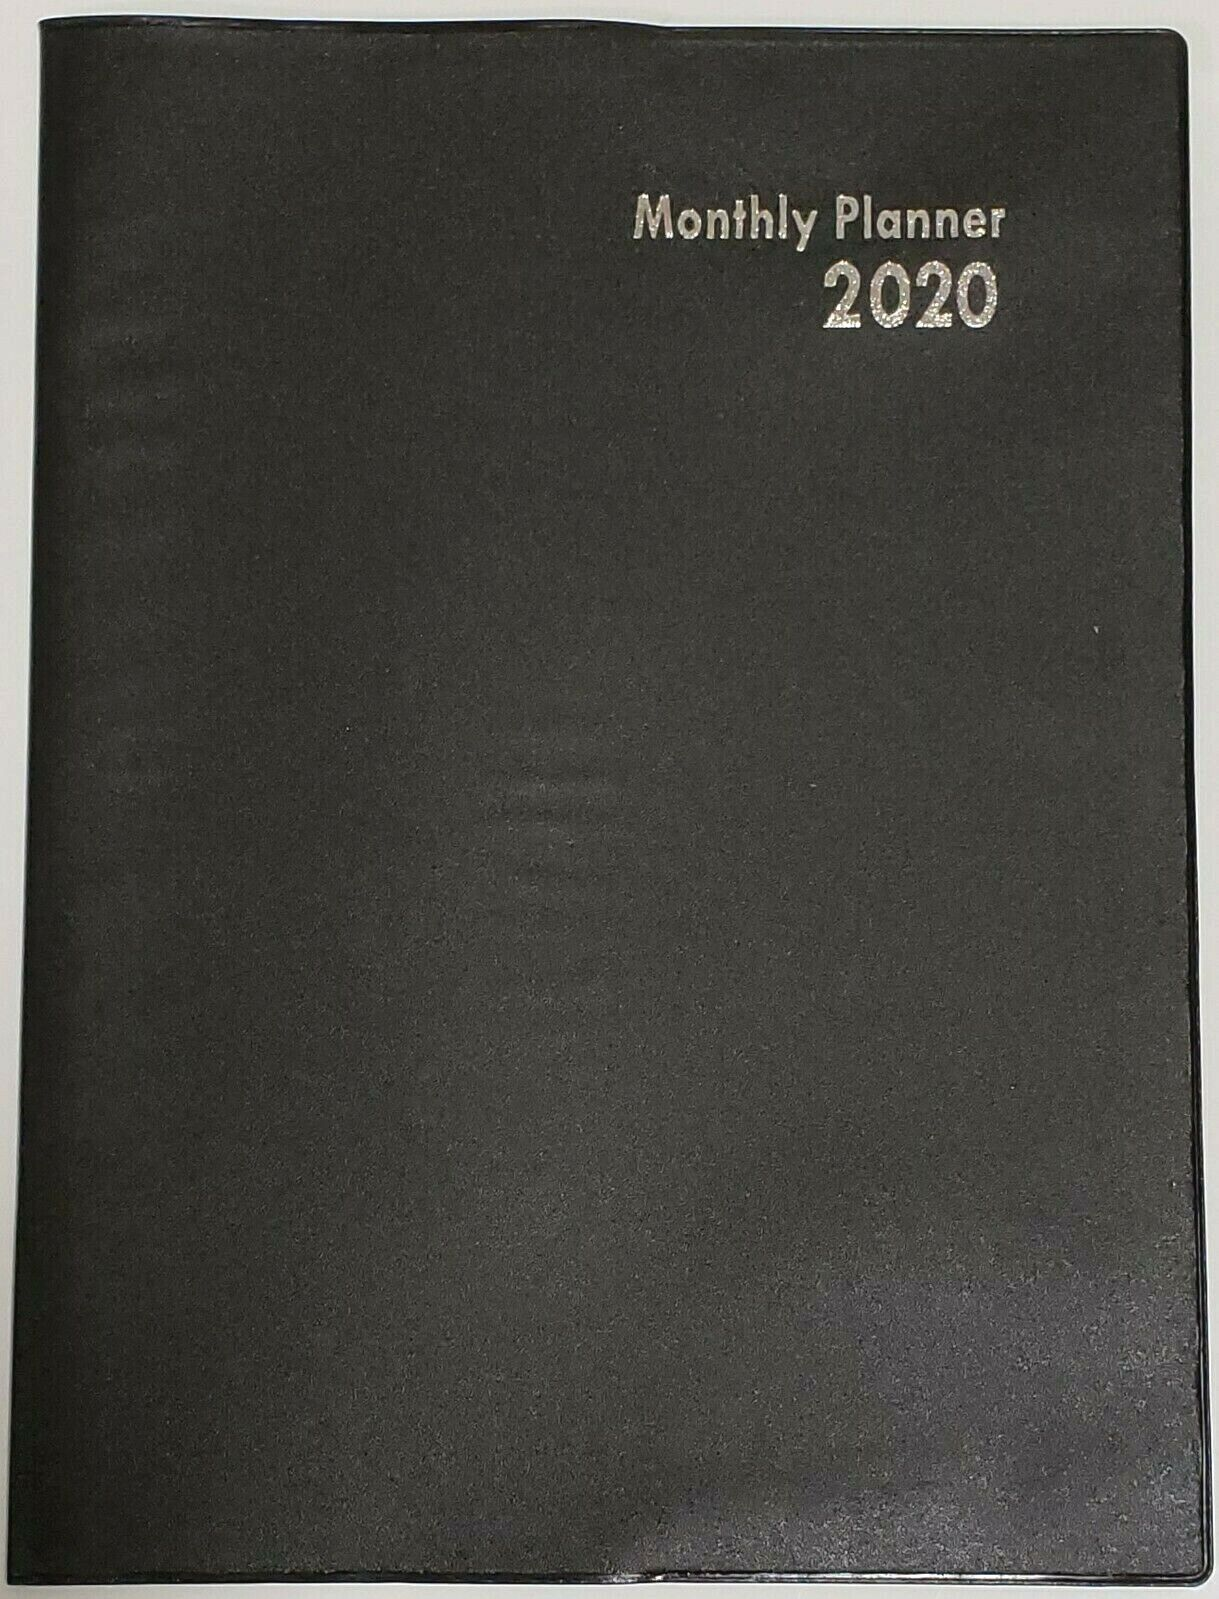 2020 Monthly Planner/Calendar, Black 10 x 7.5 Inches